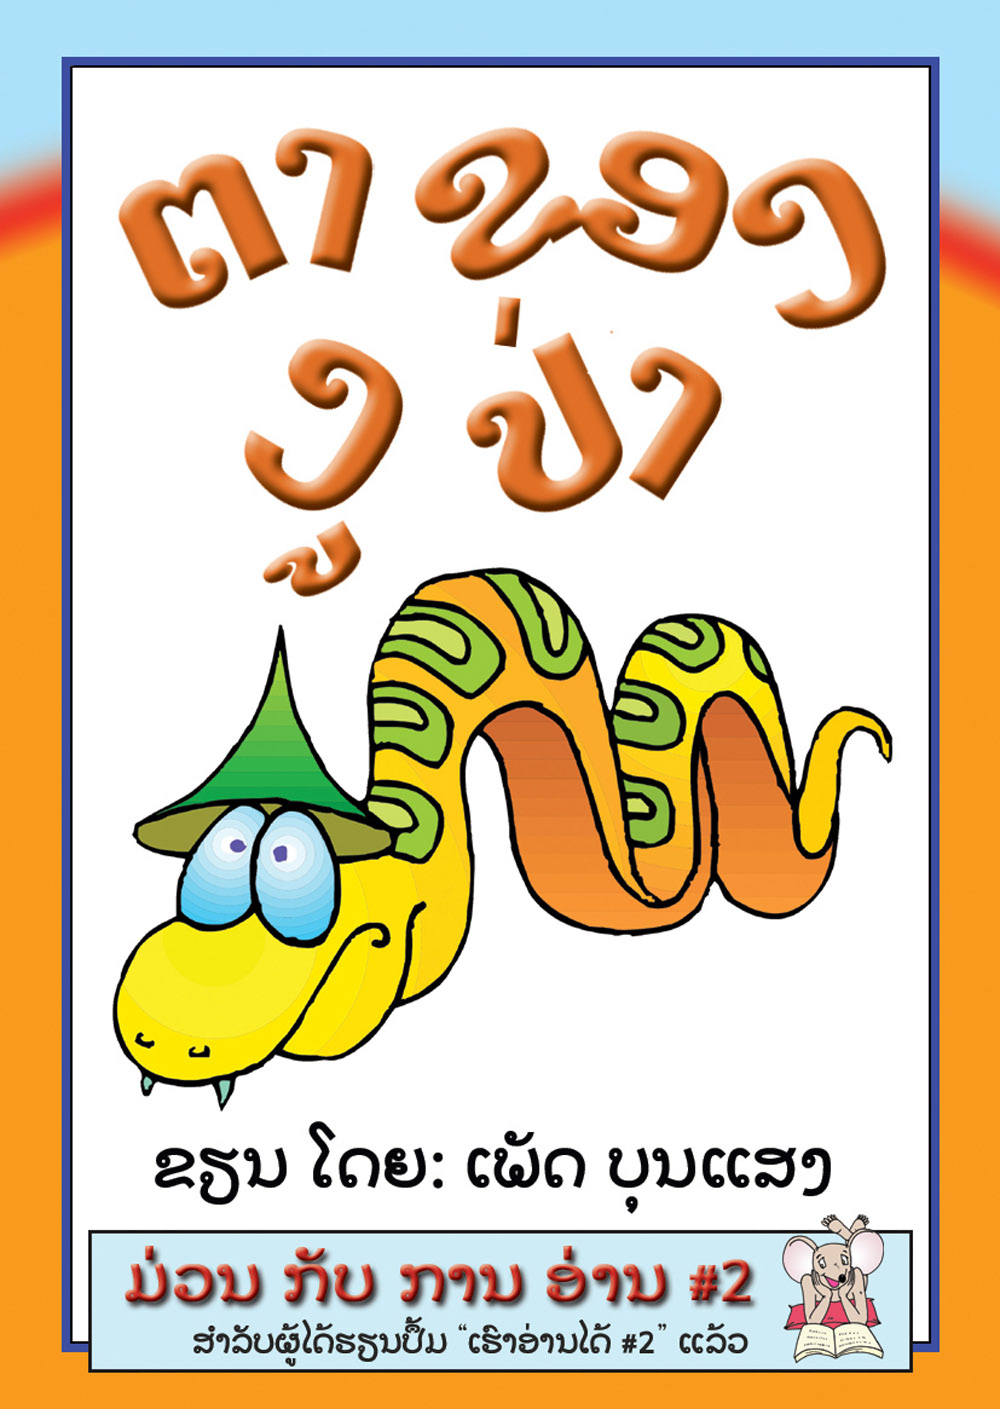 The Crazy Snake's Eyes large book cover, published in Lao language